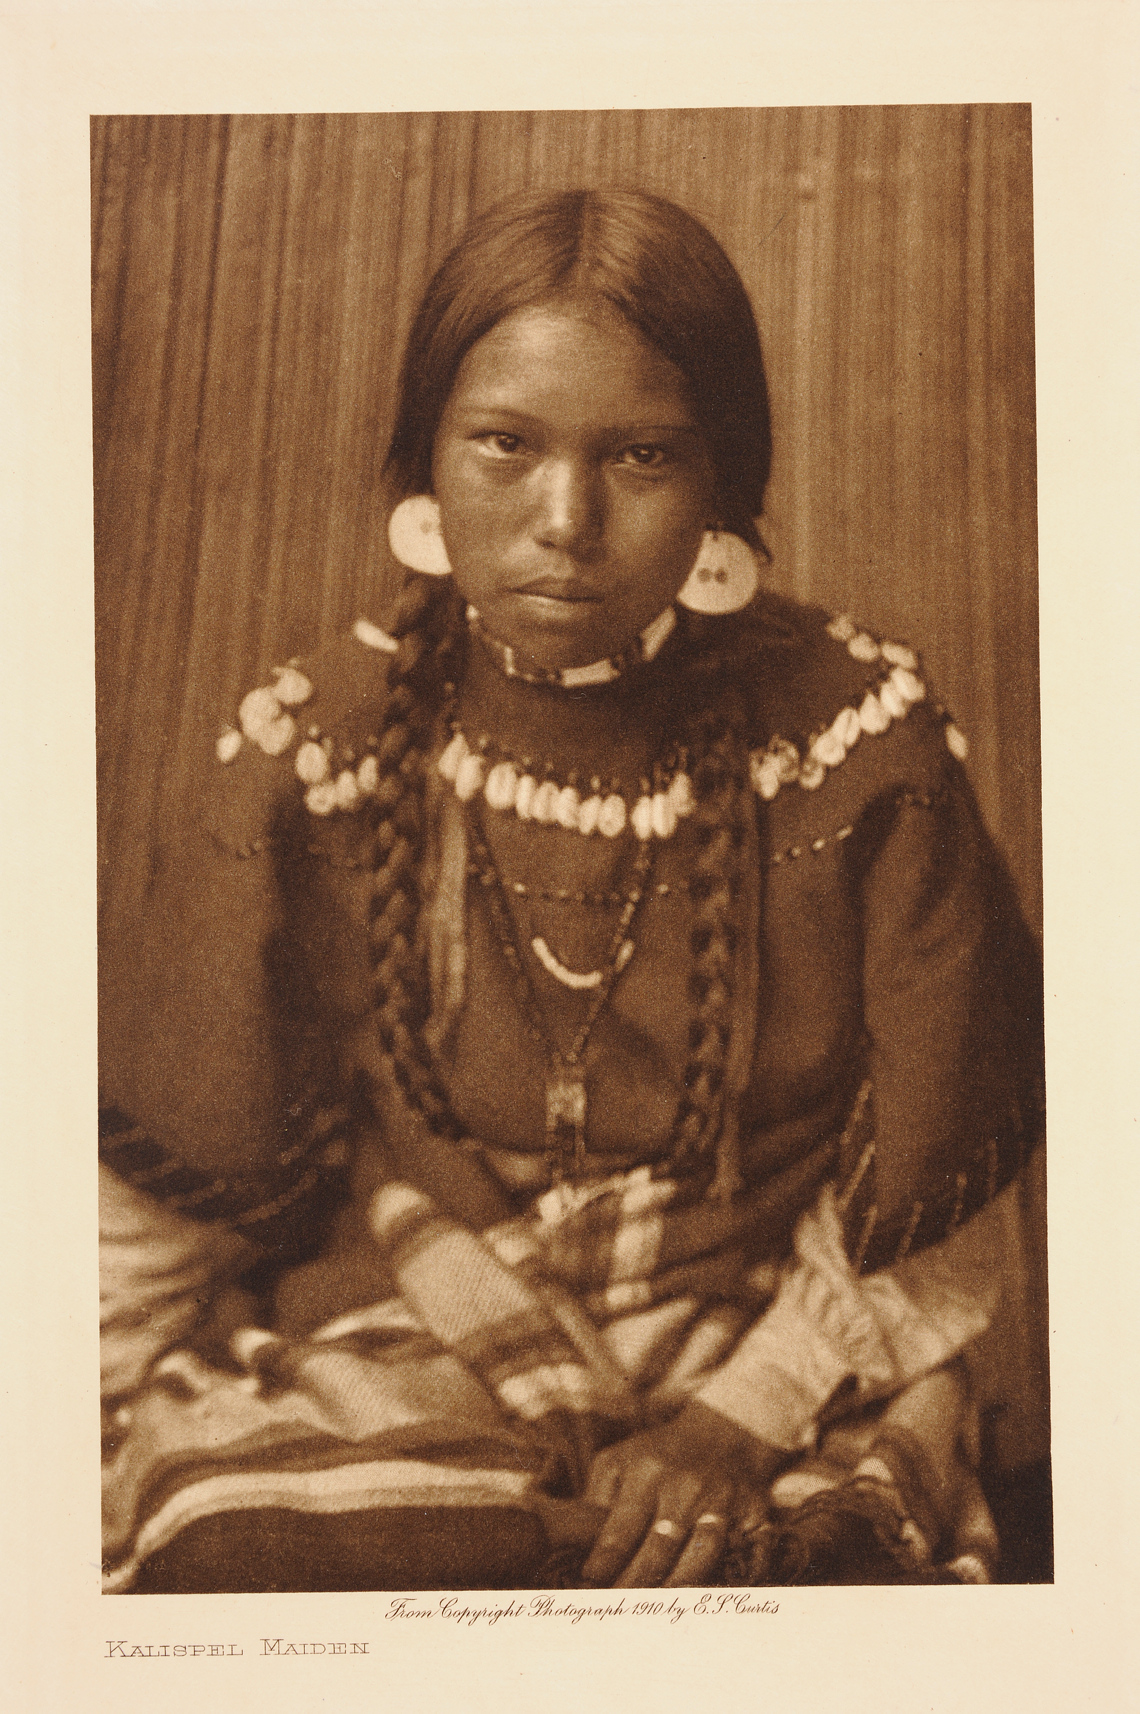 Edward Sheriff Curtis